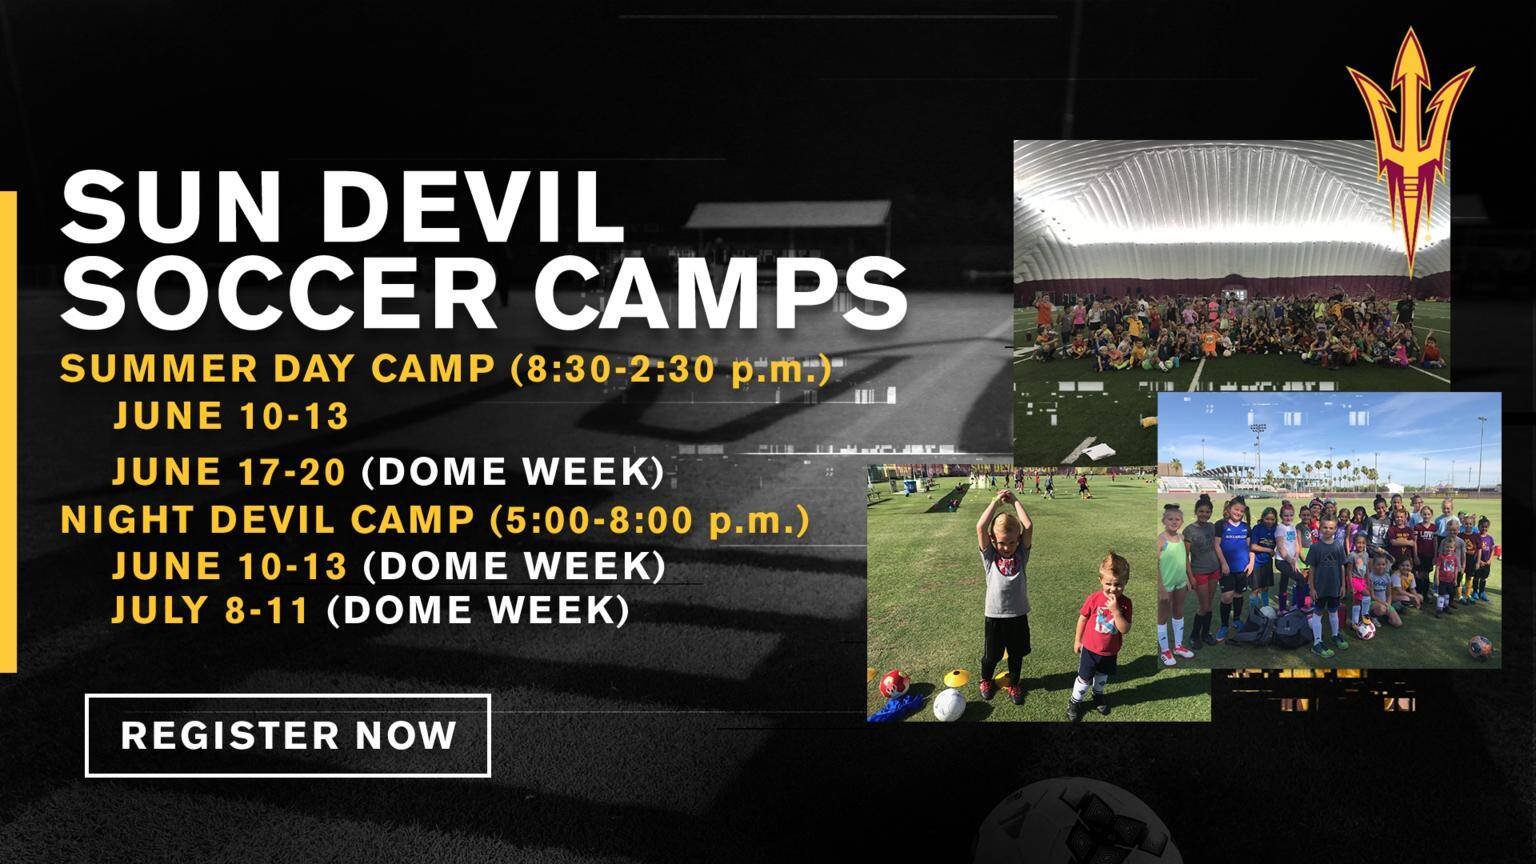 ASU Youth Soccer Camp Tempe AZ